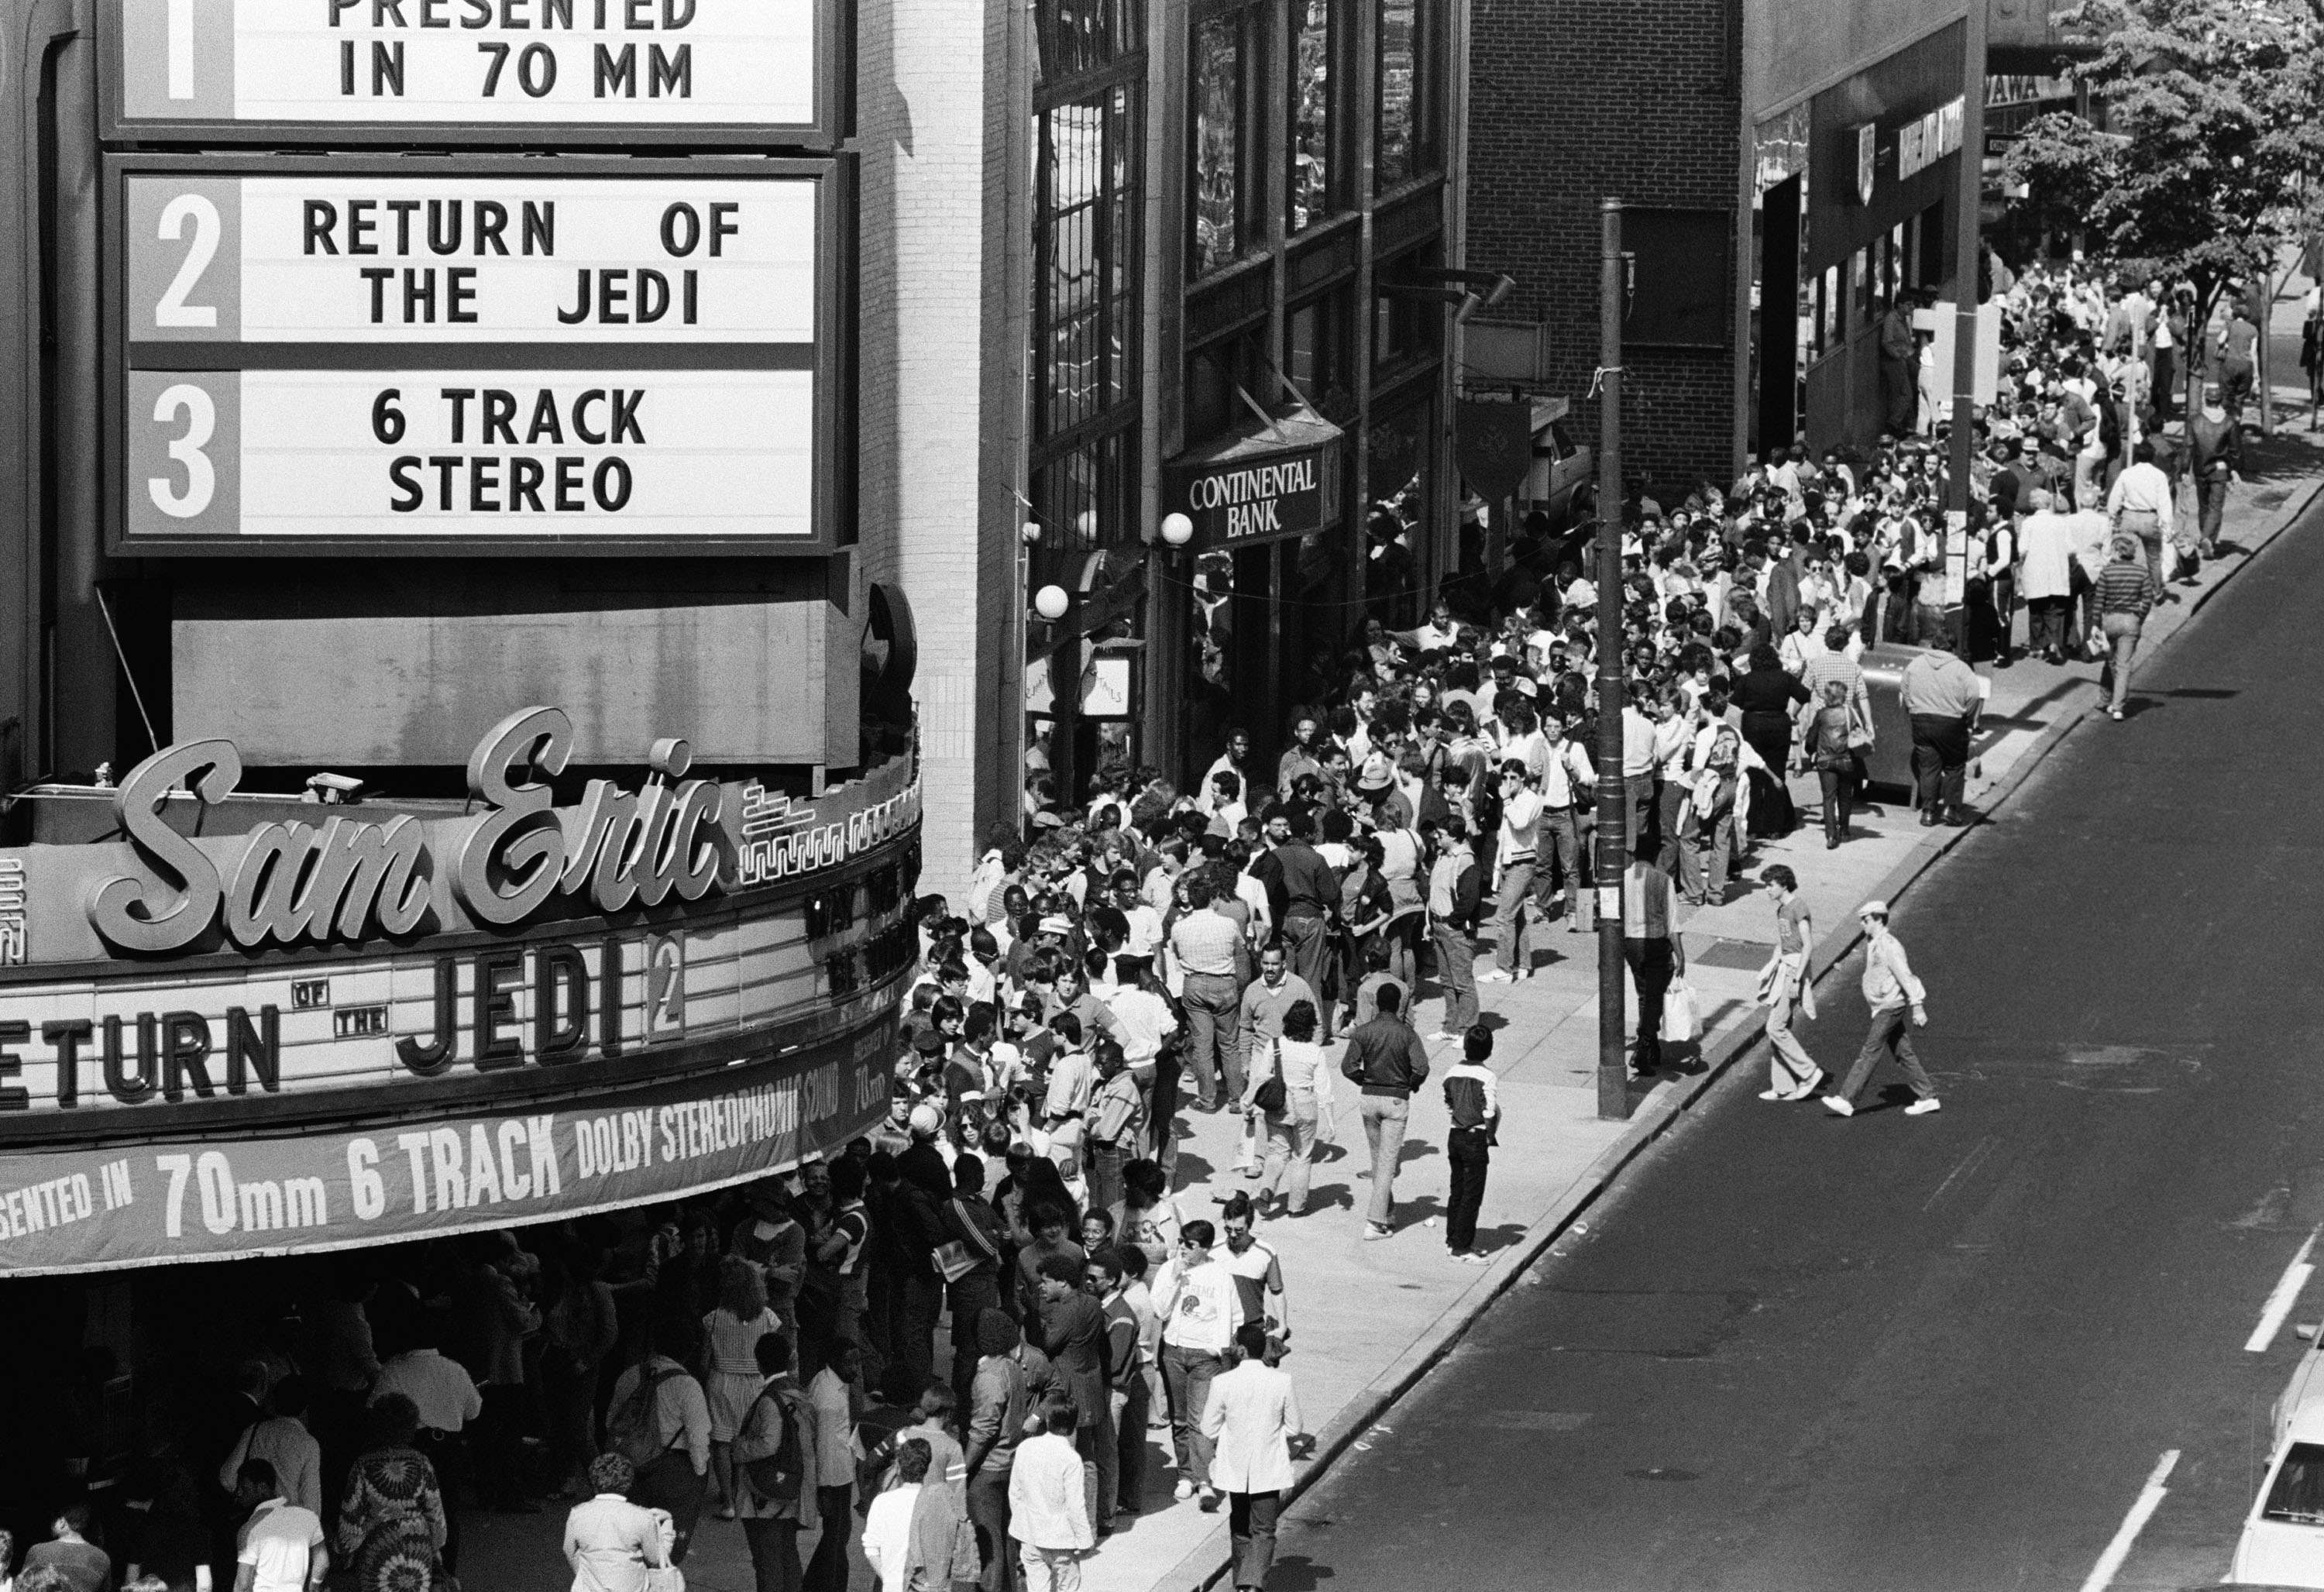 Waiting In Line To See Star Wars 1977 2000